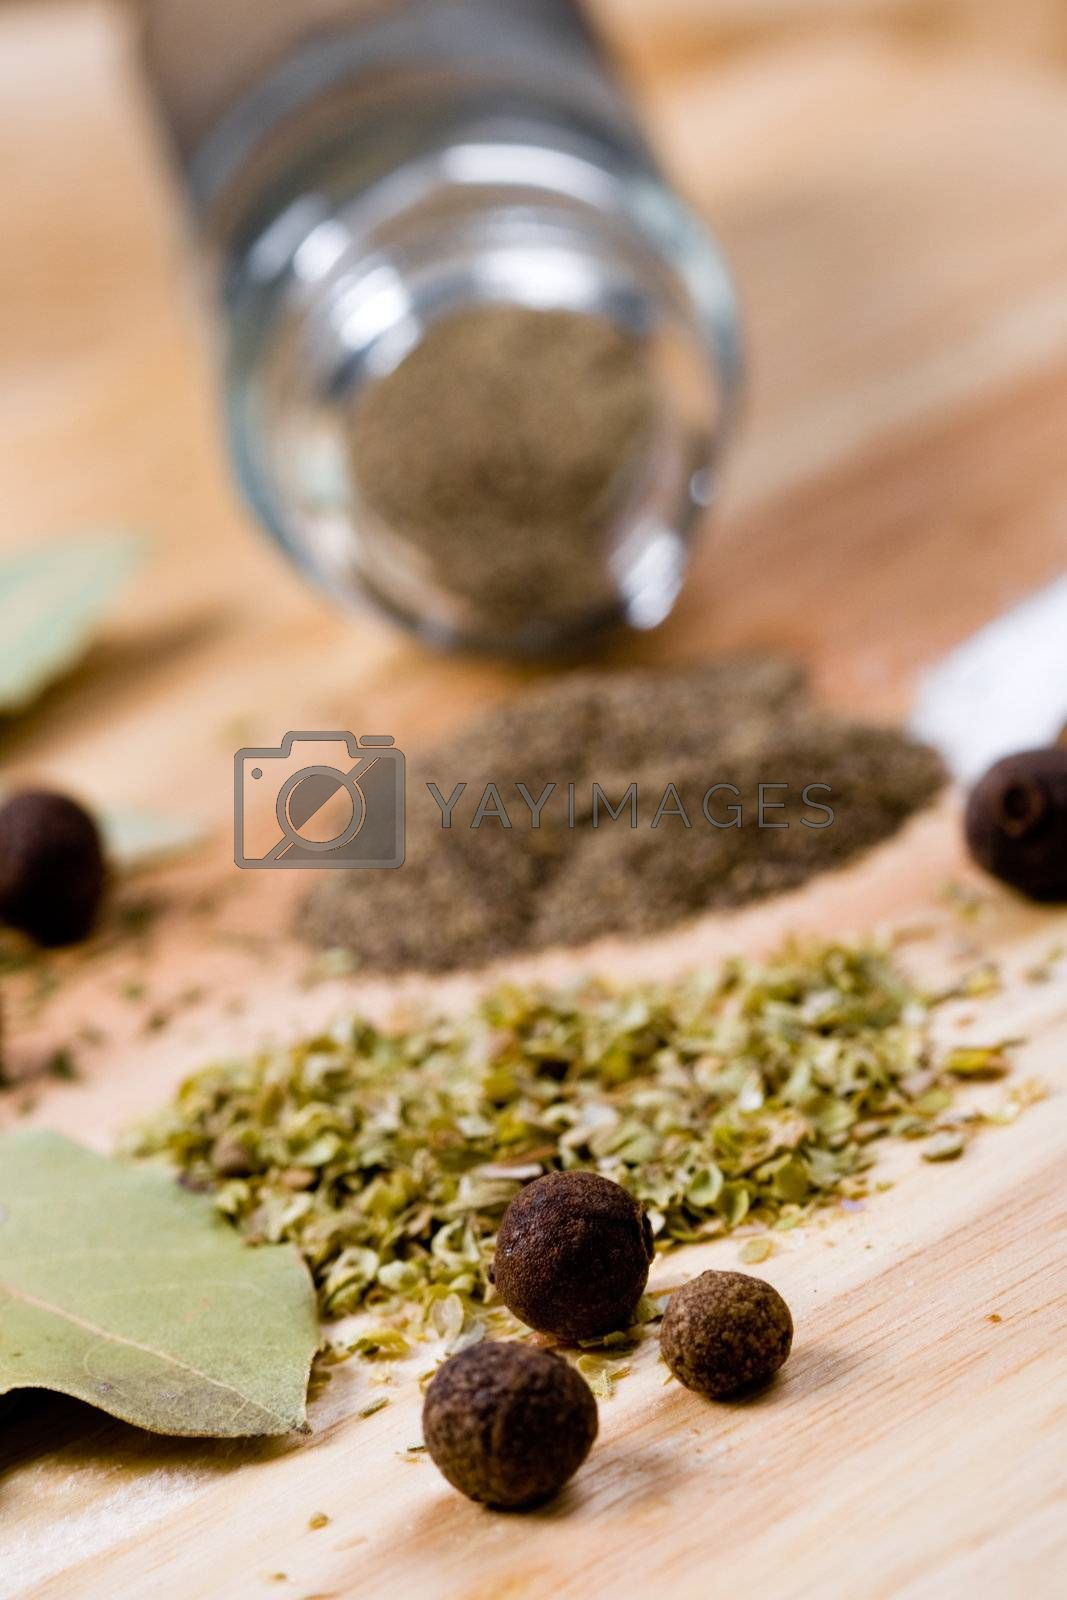 Royalty free image of pepper, herbs and bay leaves by marylooo